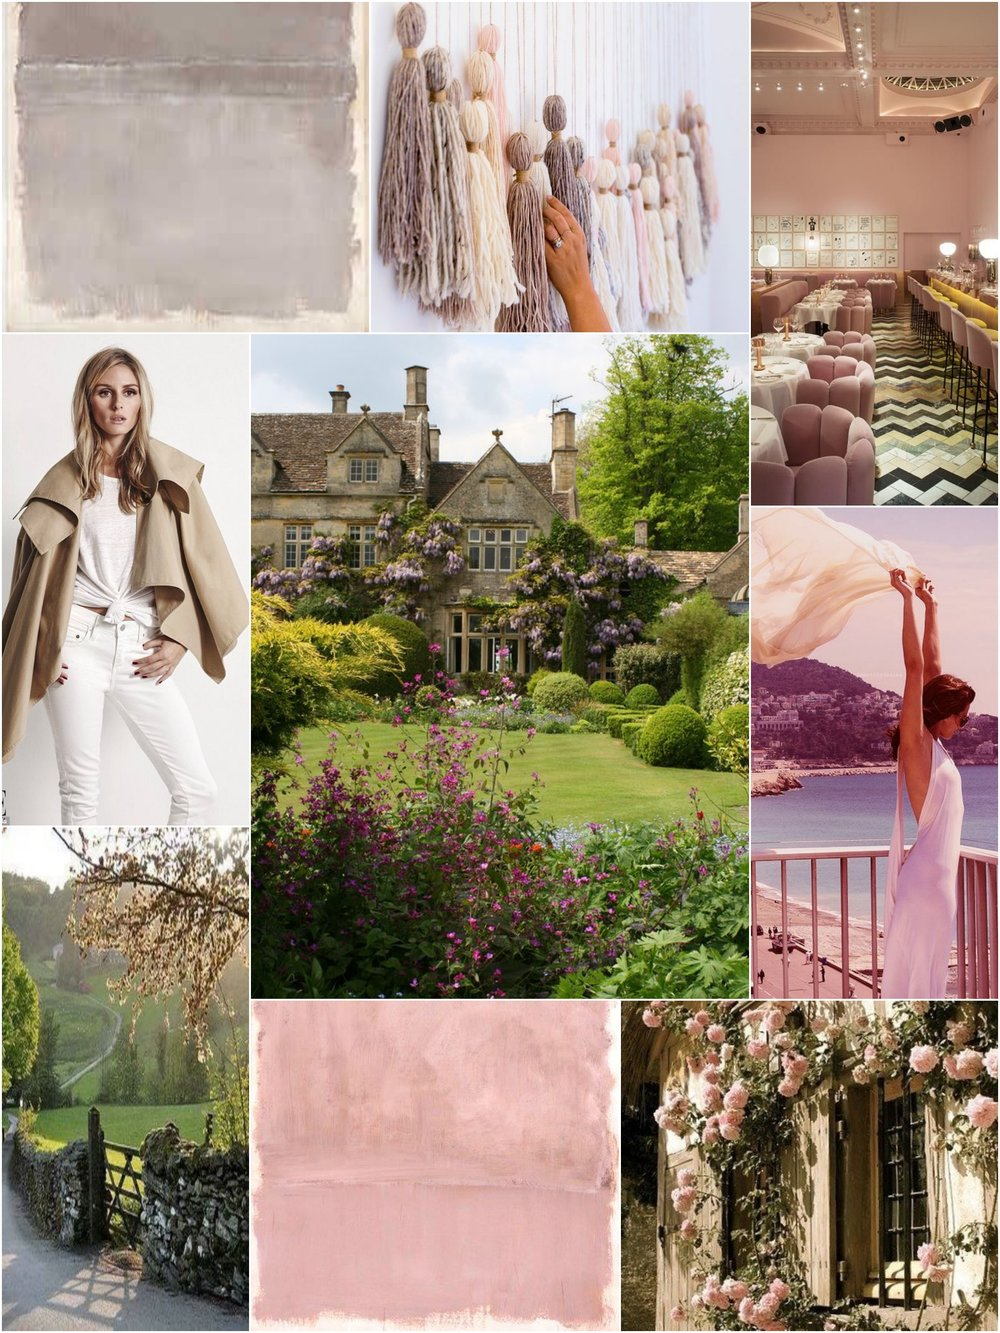 Photos (clockwise from upper left):  Mark Rothko  Untiled Grey Painting 1969 |  Honestly WTF  |  Sketch London  |  For Lovers Only  |  English Country Side  |  Mark Rothko  Pink On Pink 1953 |  Primrose Garden  |  Olivia Palermo  |  Barnsley House